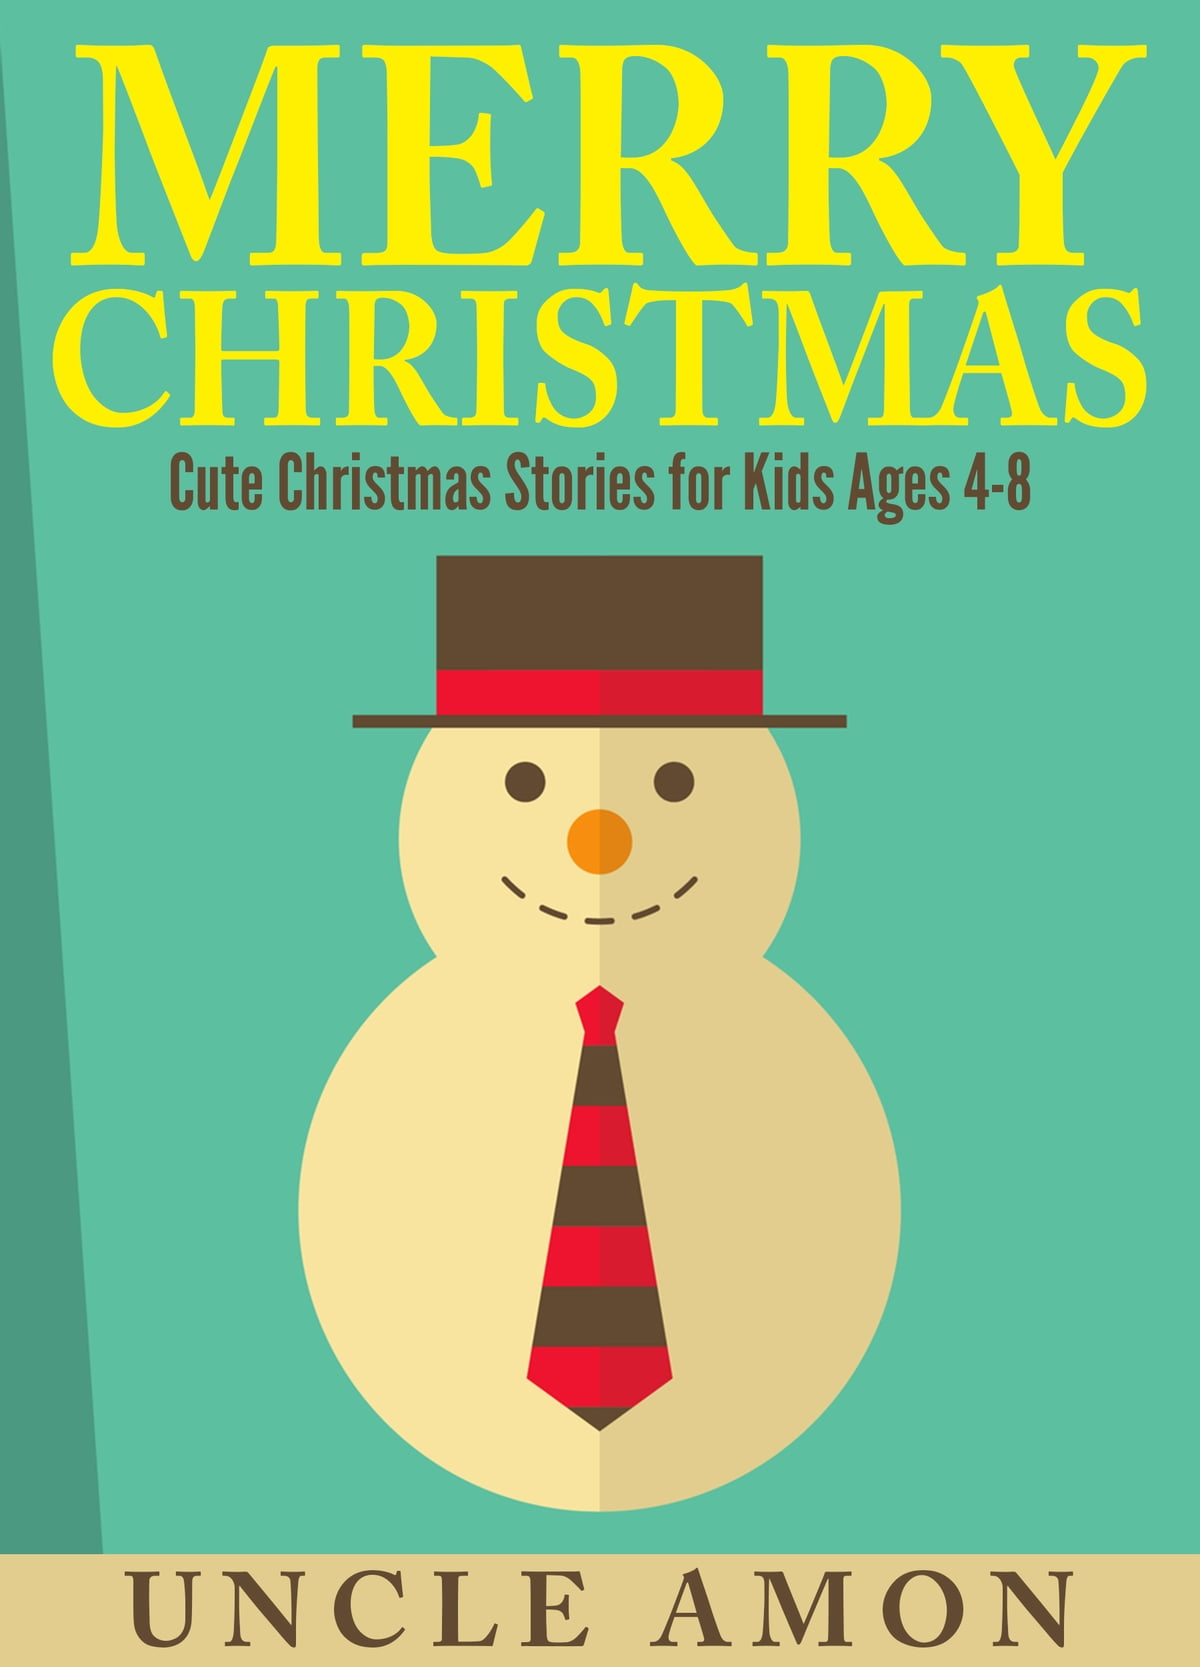 Christmas Stories For Kids.Merry Christmas Cute Christmas Stories For Kids Ebook By Uncle Amon Rakuten Kobo